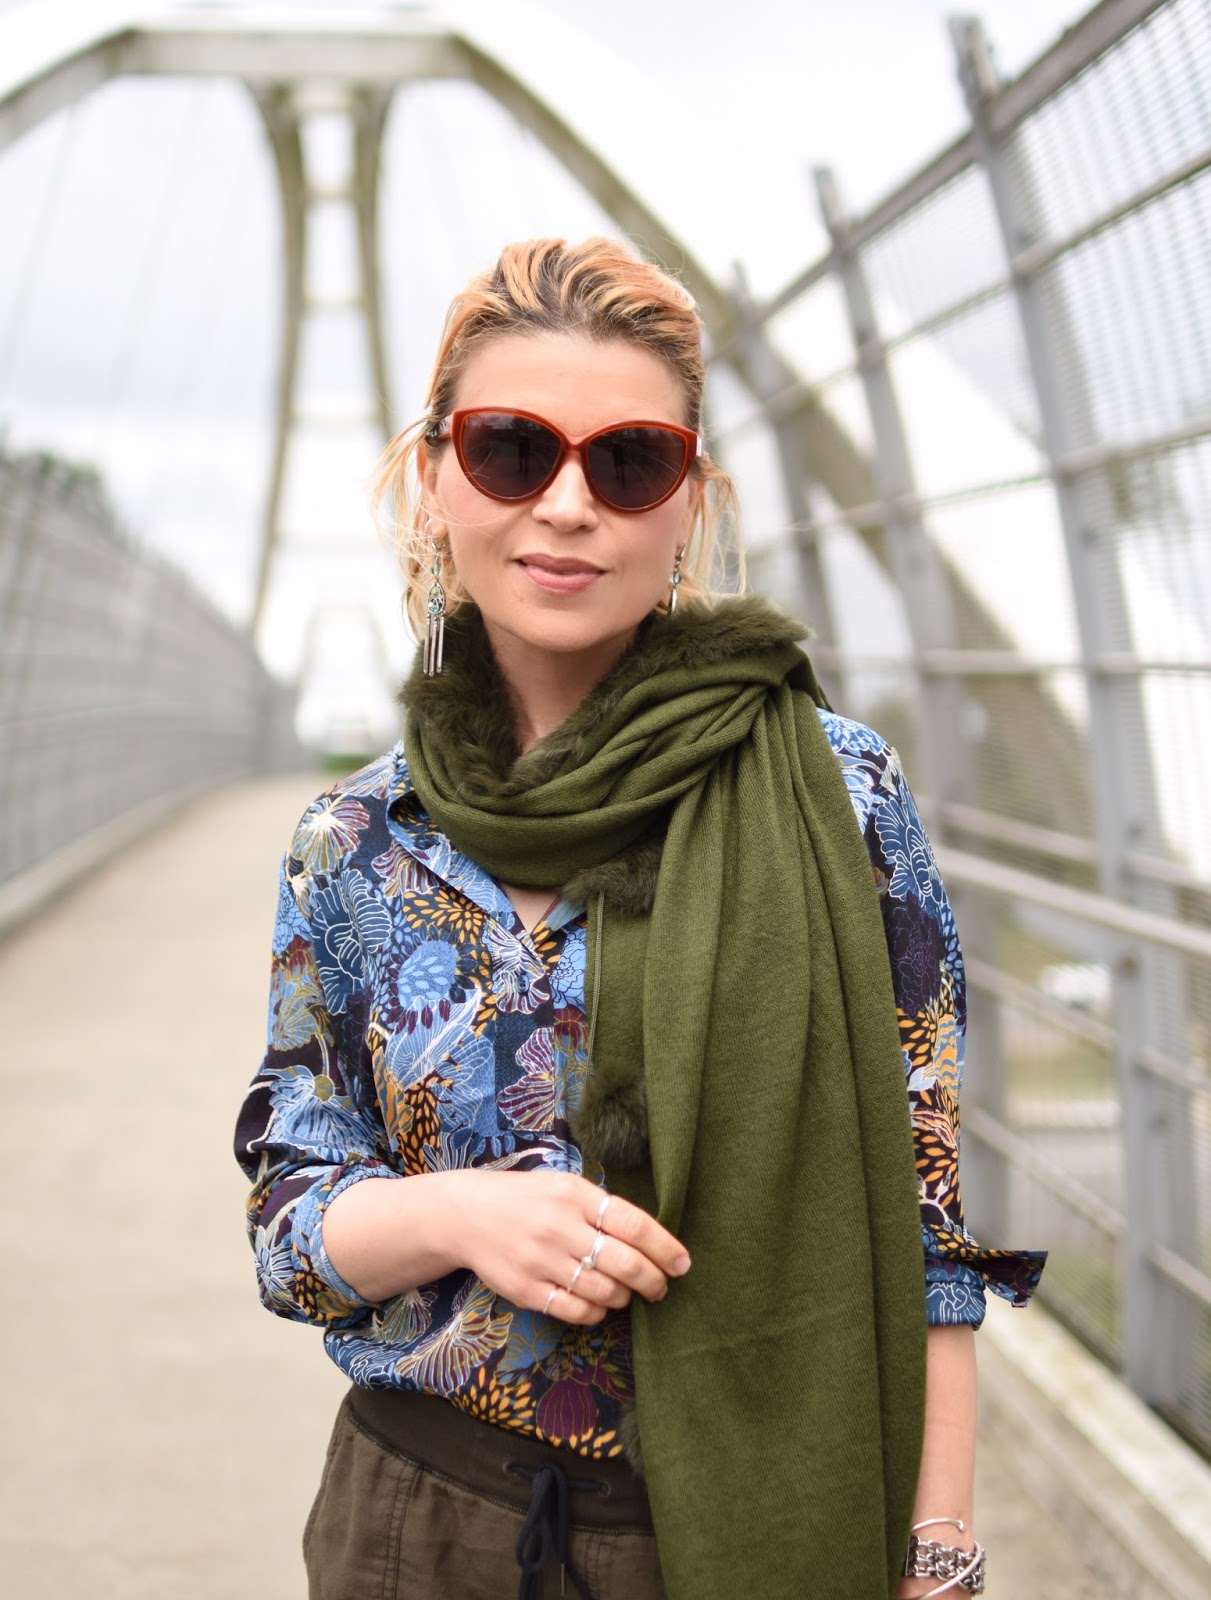 slouchy cargo pants, floral blouse, pompom scarf, House of Harlow 1960 sunglasses